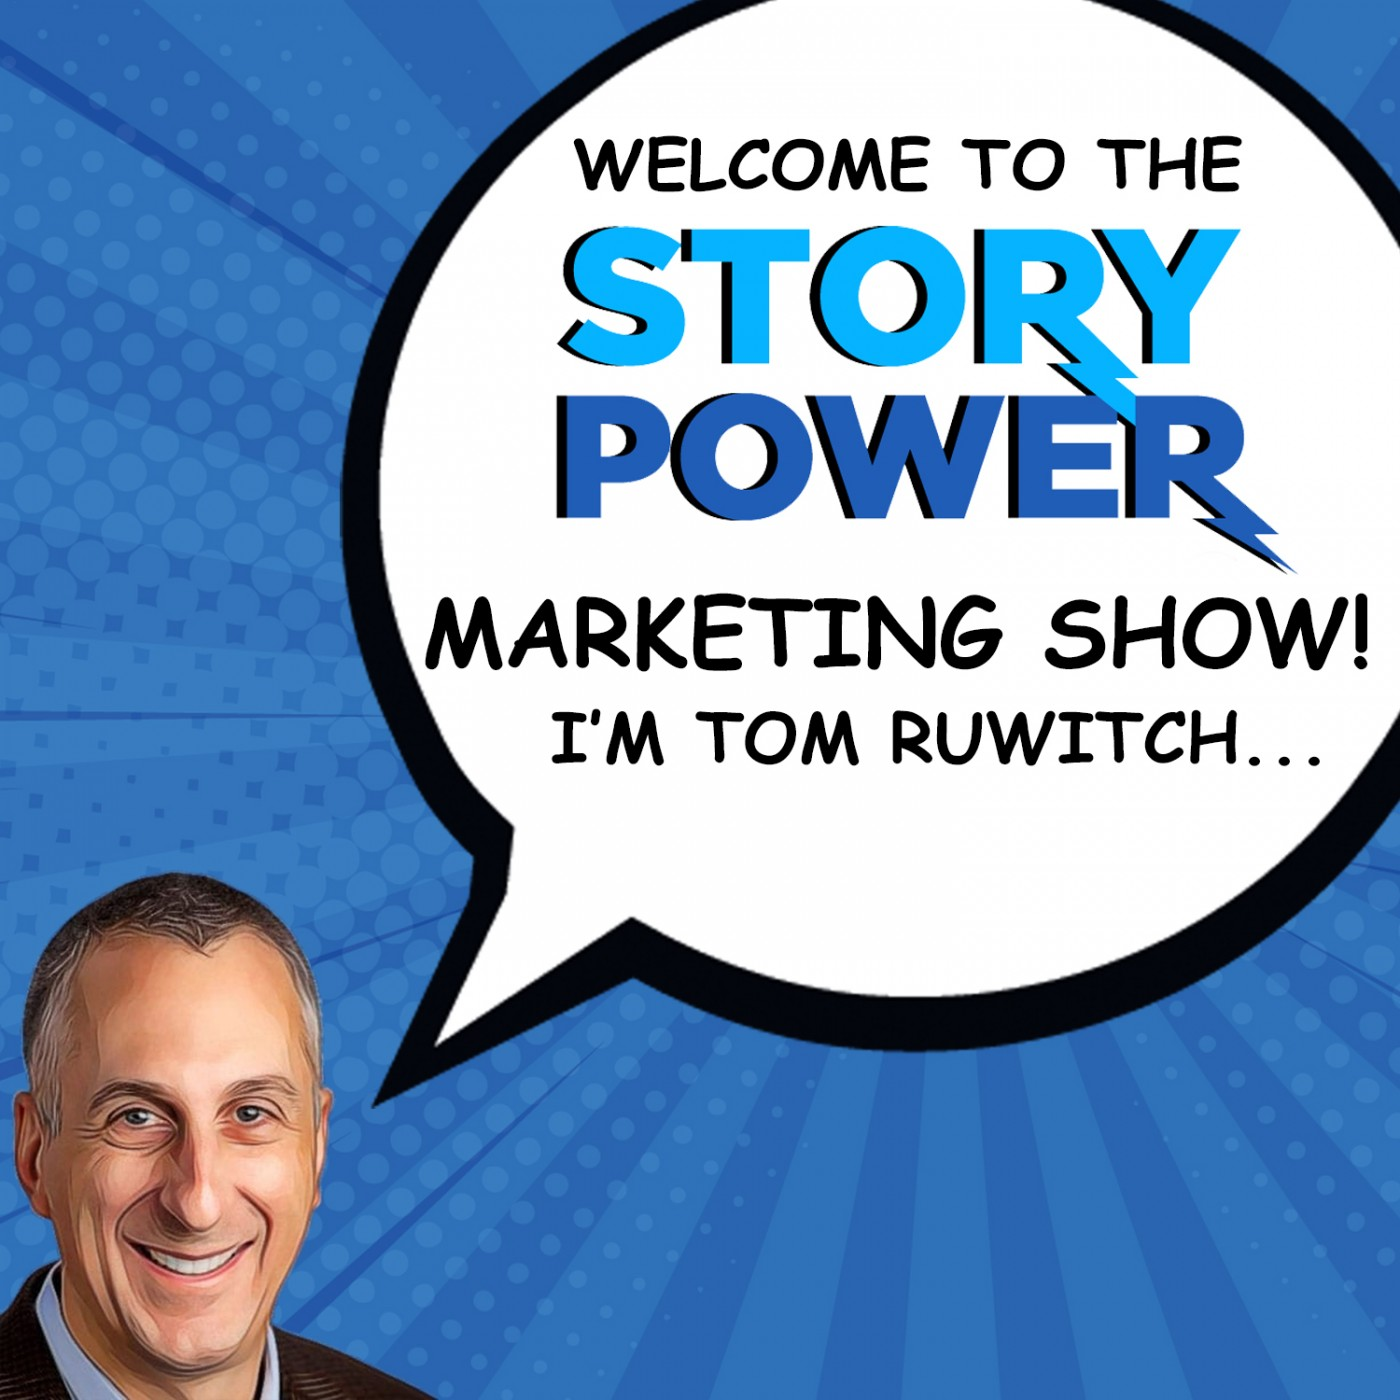 The Story Power Marketing Show